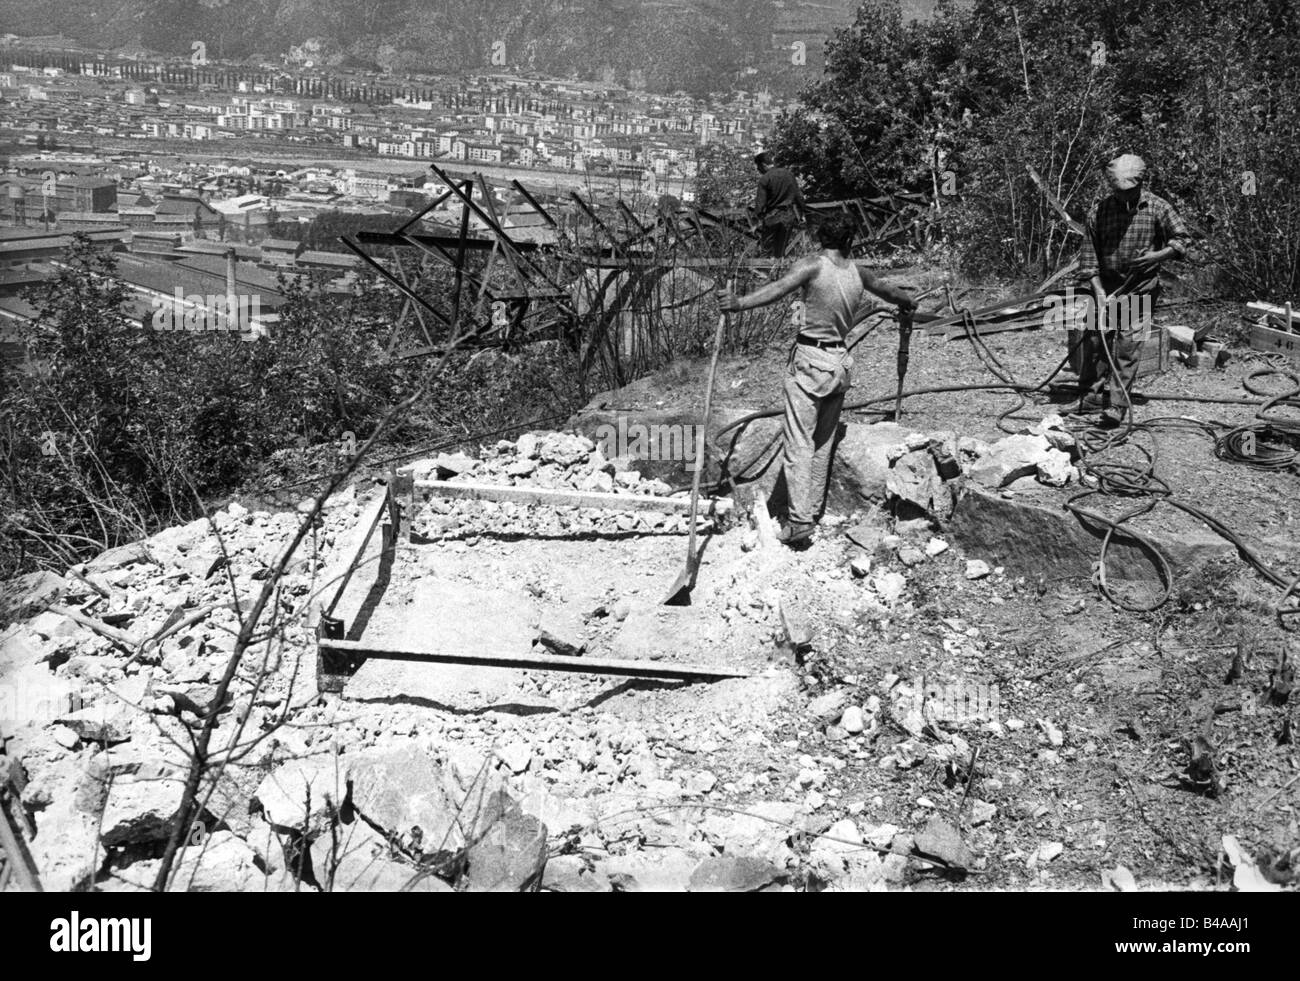 geography / travel, Italy, politics, South Tyrol, South Tyrol conflict, bomb attack, worker at blasted pylon, near - Stock Image